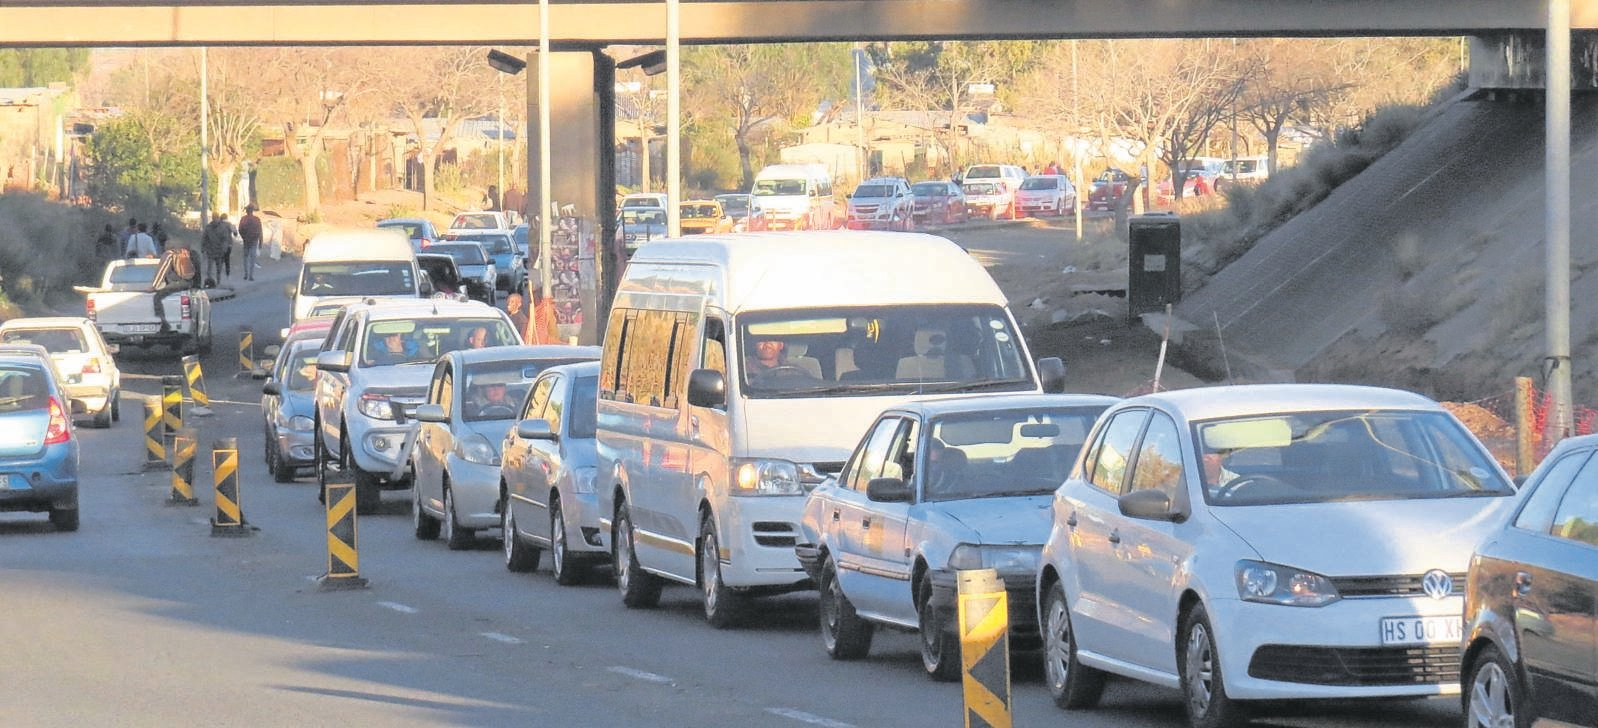 Due to road construction, traffic jams are a regular sight in Fort Hare Road in Bloemfontein. Photos: Teboho Setena